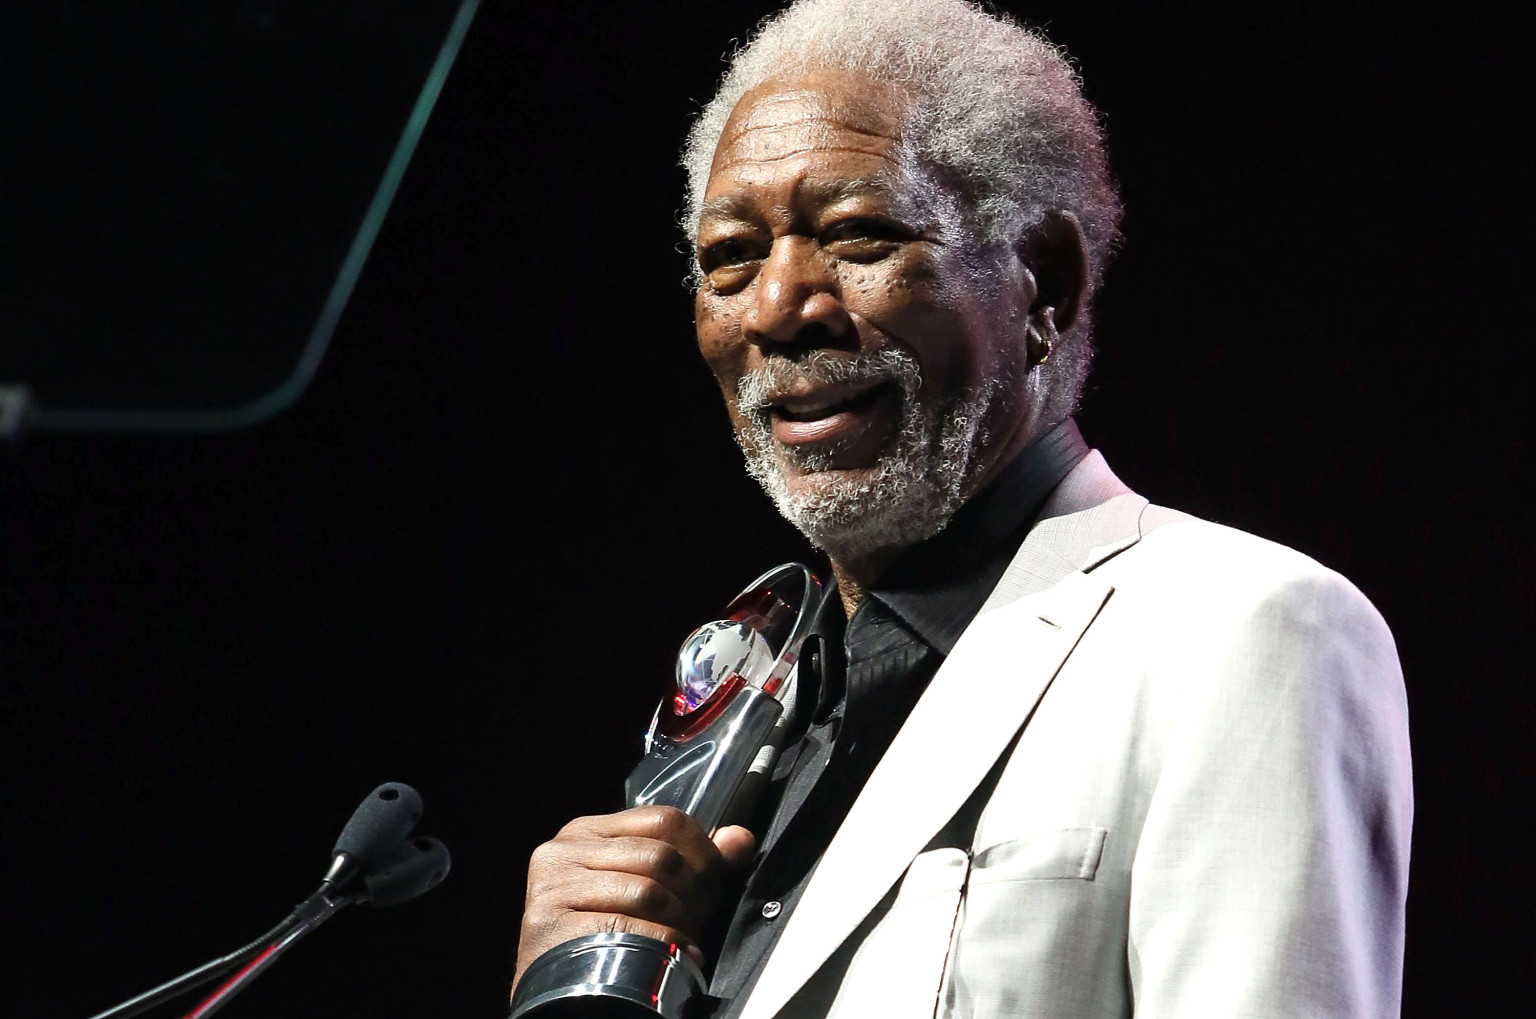 morgan freeman Early life and education morgan freeman was born on june 1, 1937 in memphis, tennesseehe is the son of mayme edna (née revere 1912–2000), a teacher, and morgan porterfield freeman, a barber, who died on april 27, 1961 he has three older siblings.